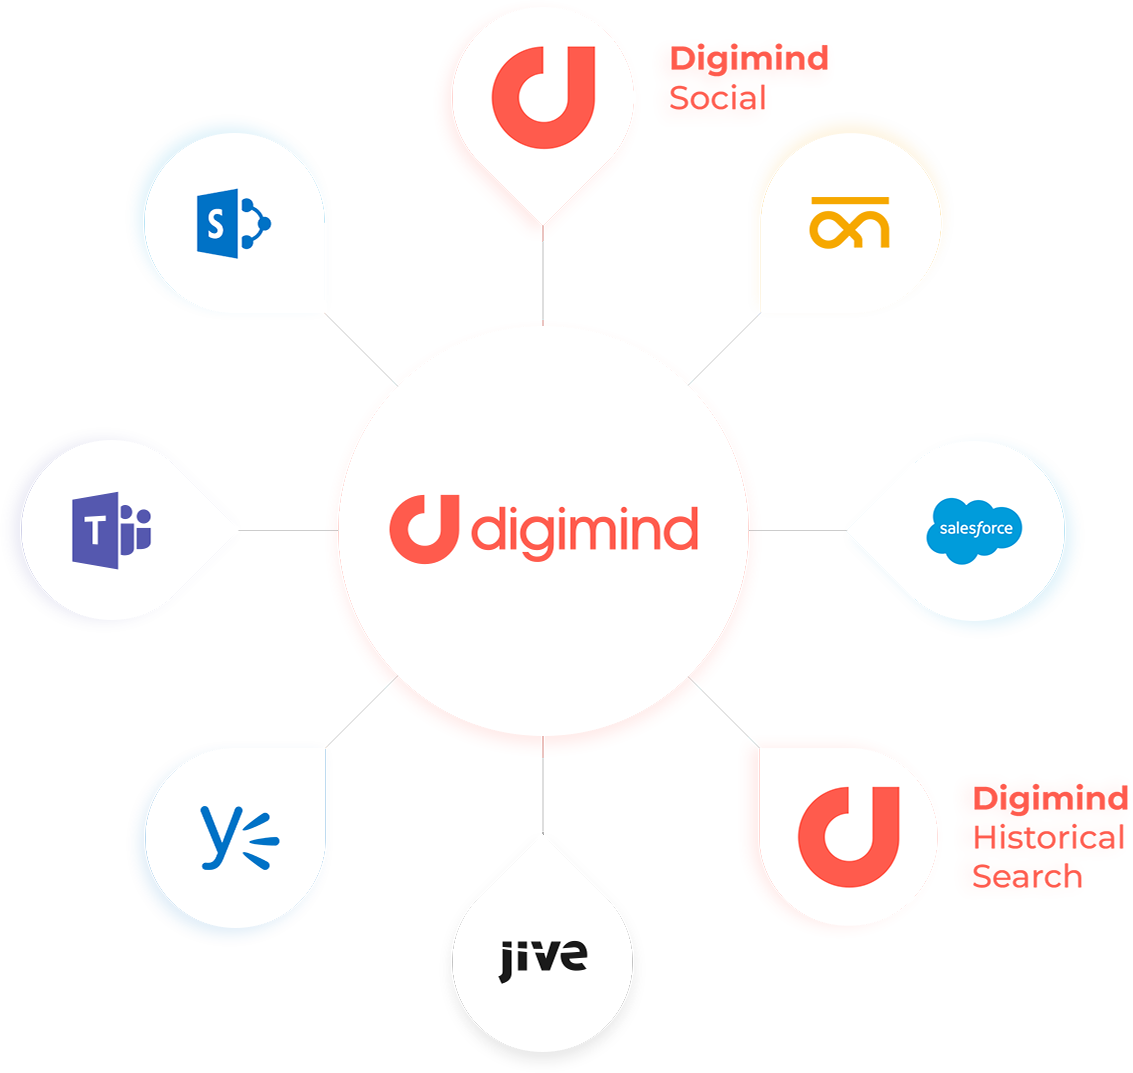 DI - Digimind Marketplace_Bubble 2.png